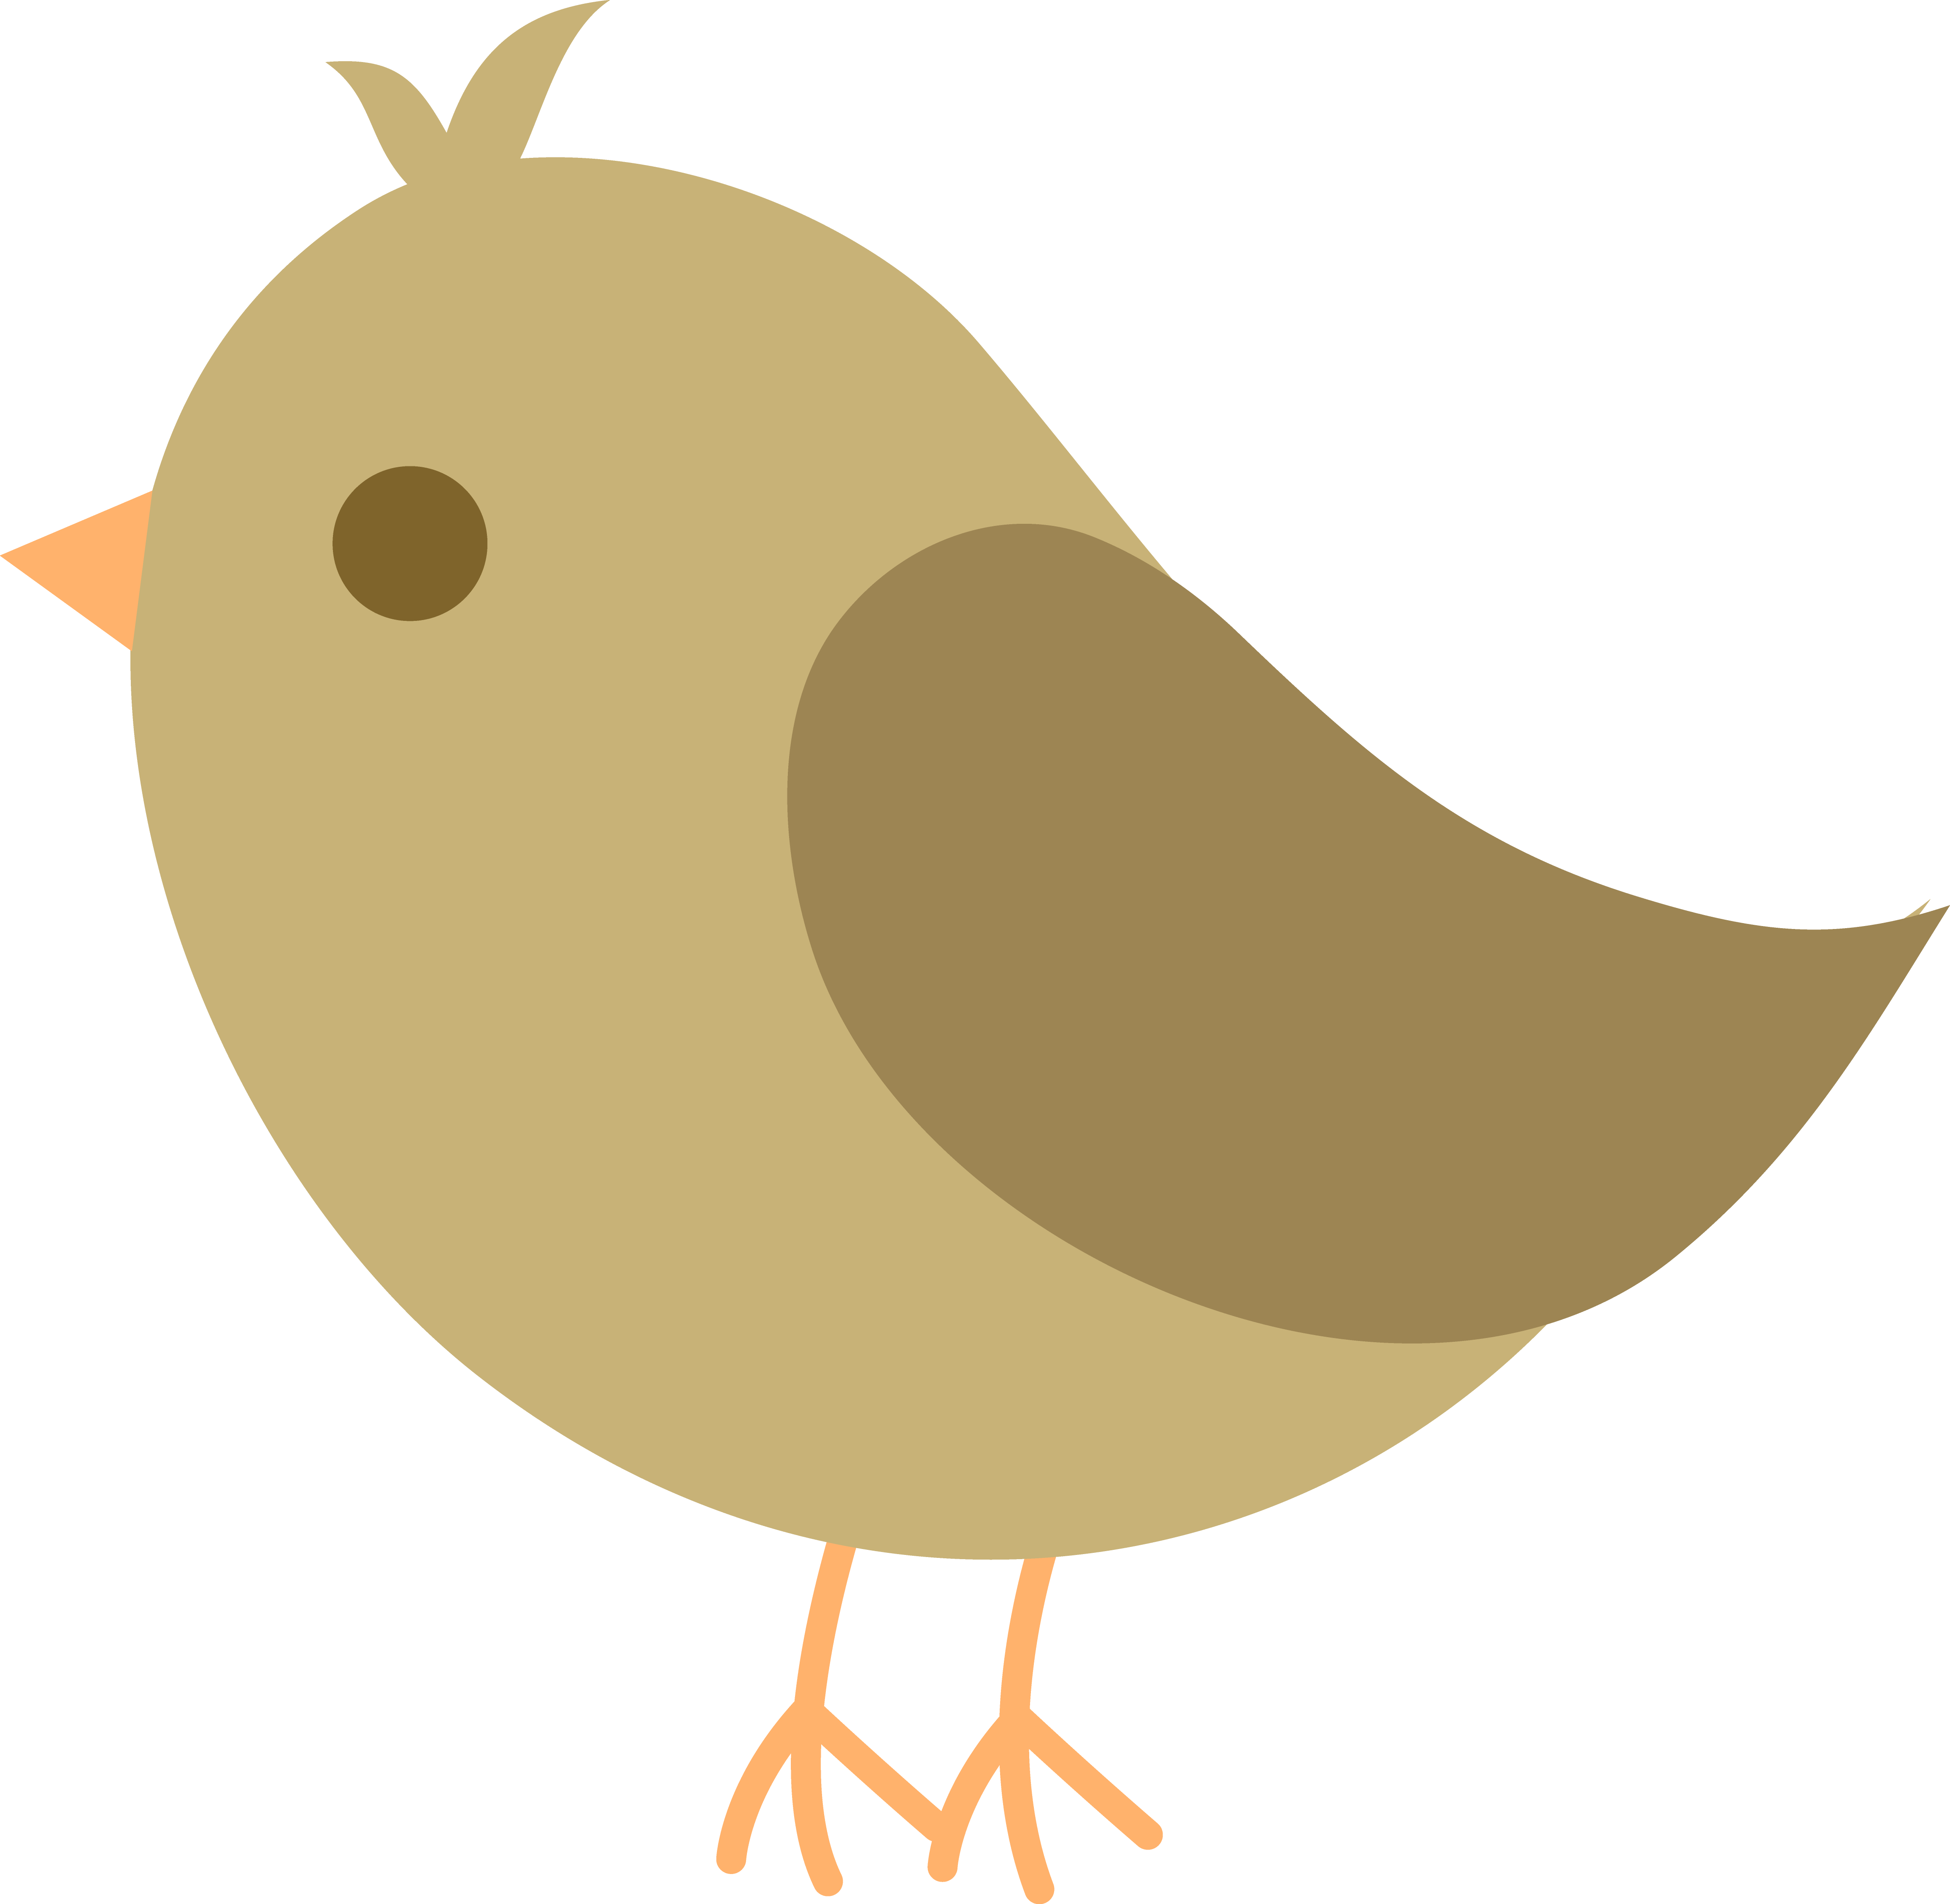 4621x4511 Clip Art Cute Bird Silhouette Lemonize